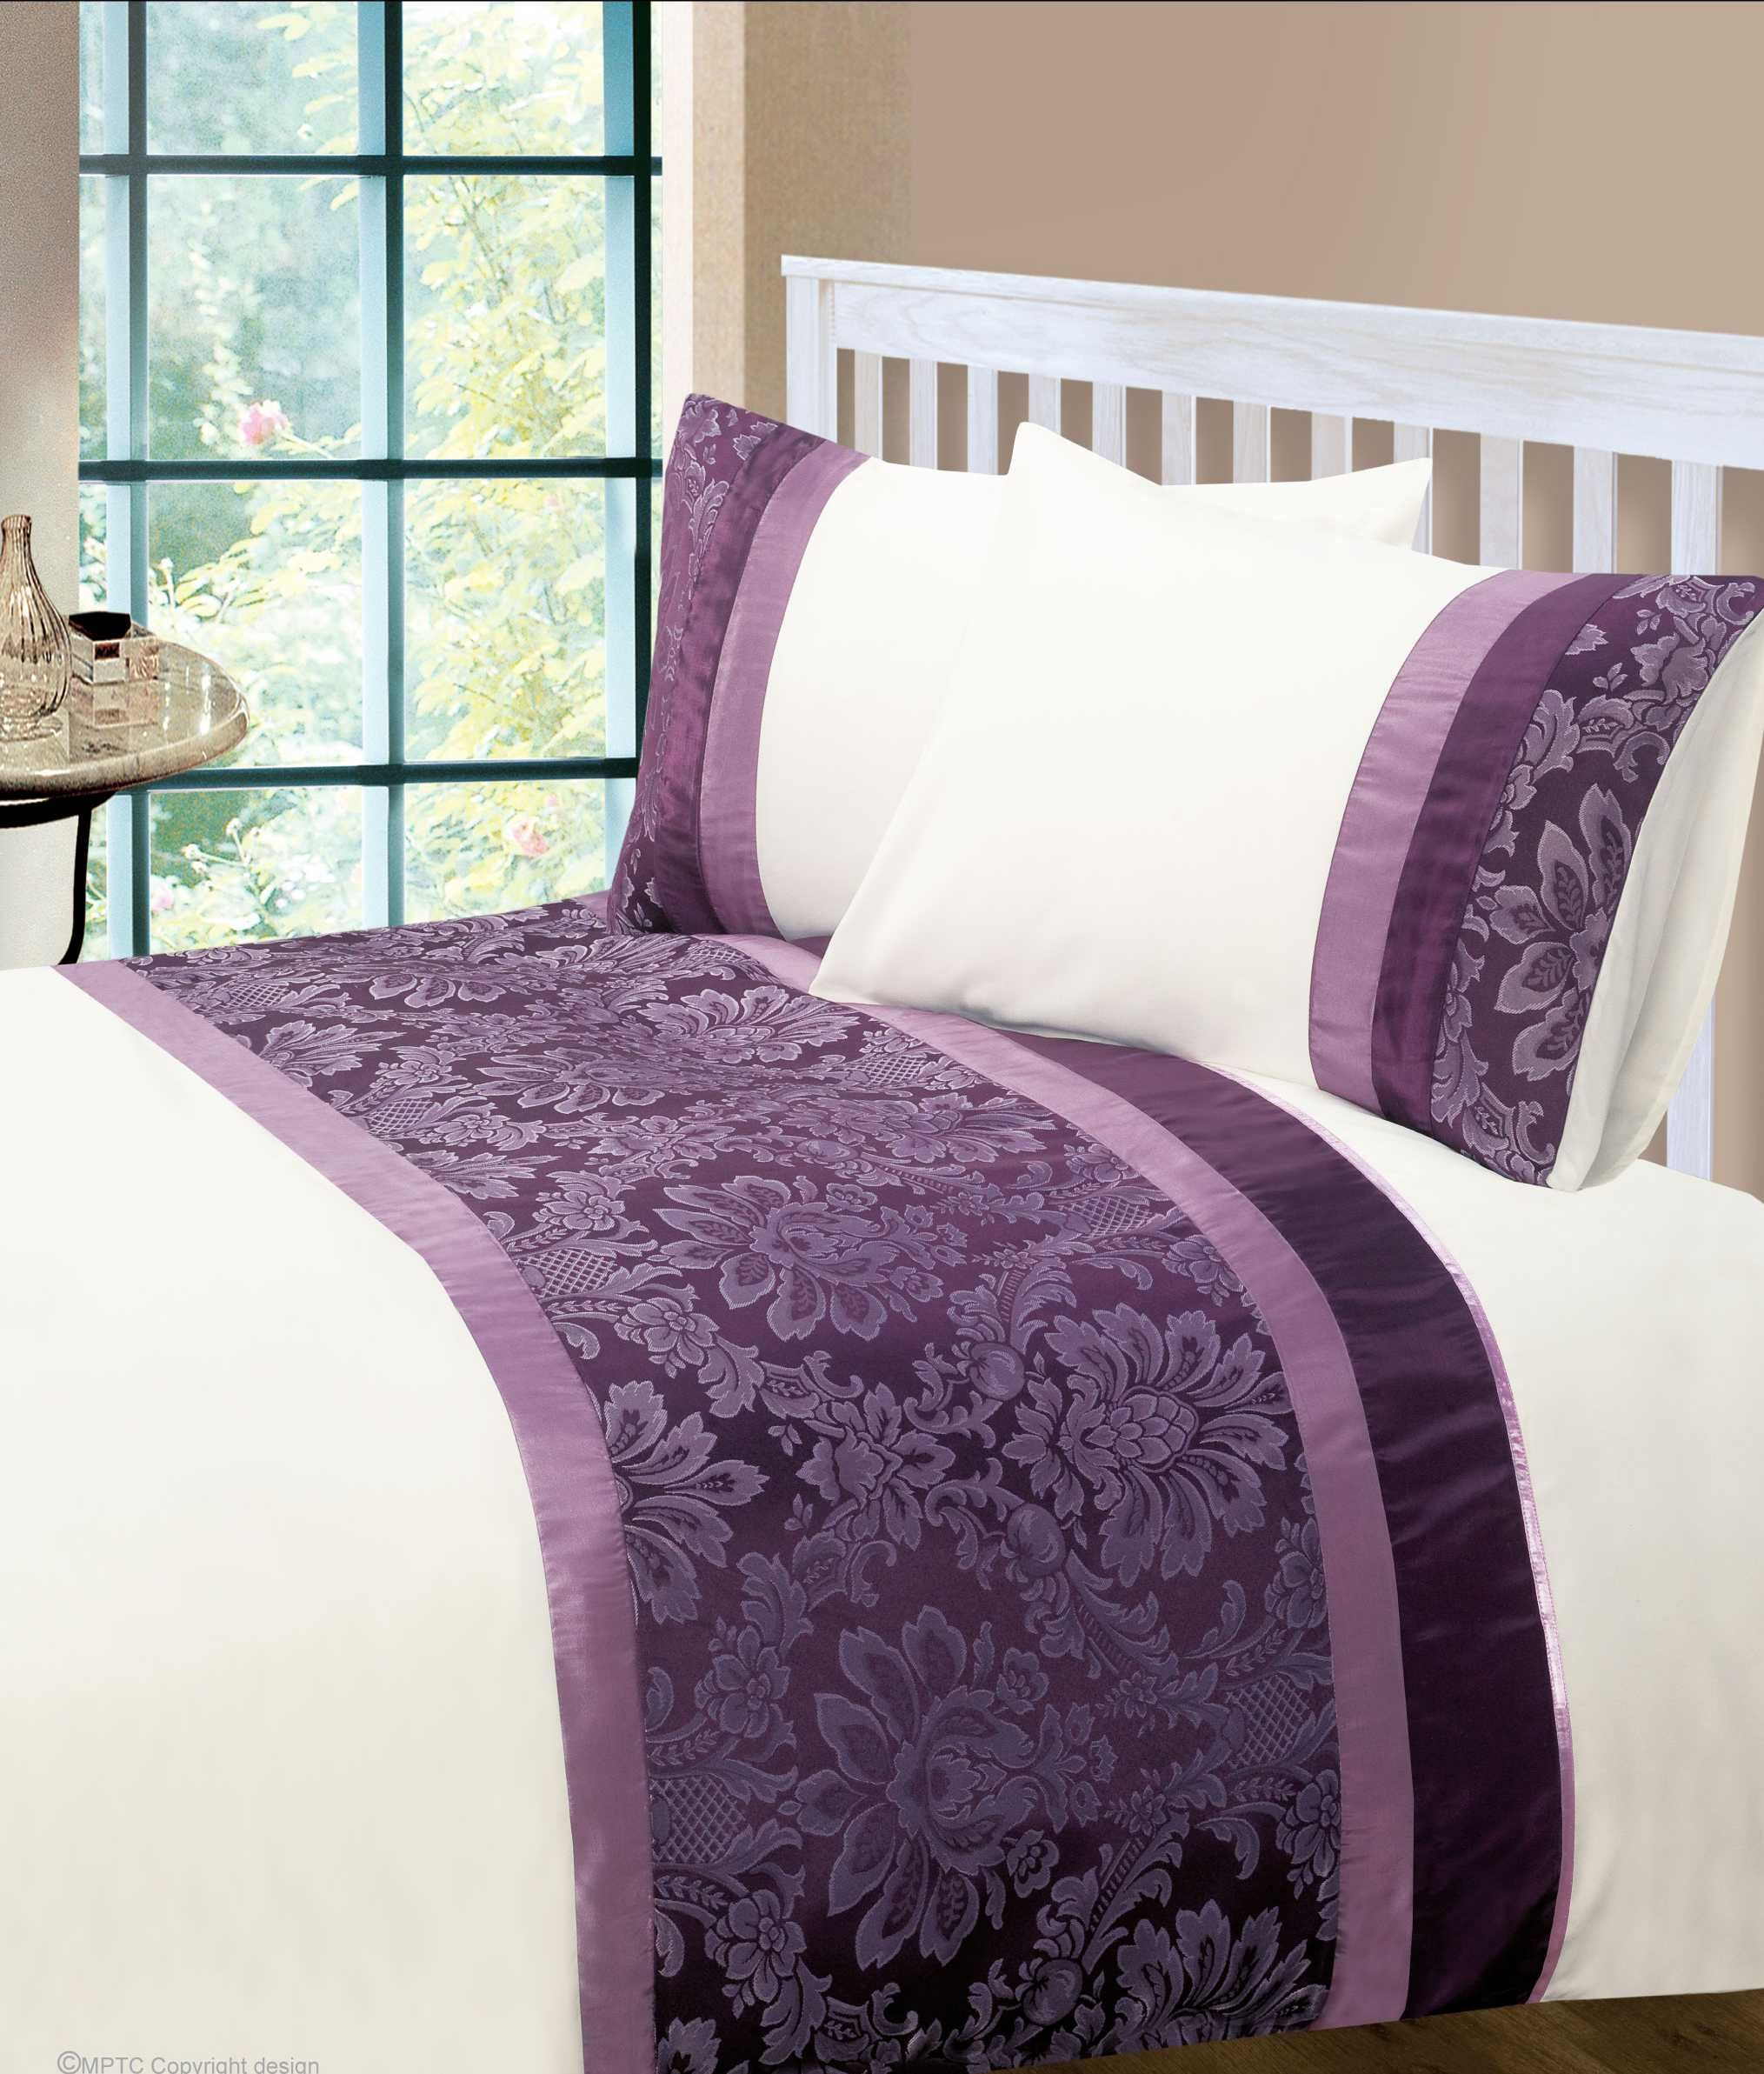 Bed sheet set with quilt - Aubergine Colour Modern Stylish Damask Bedding Quality Duvet Quilt Cover Set